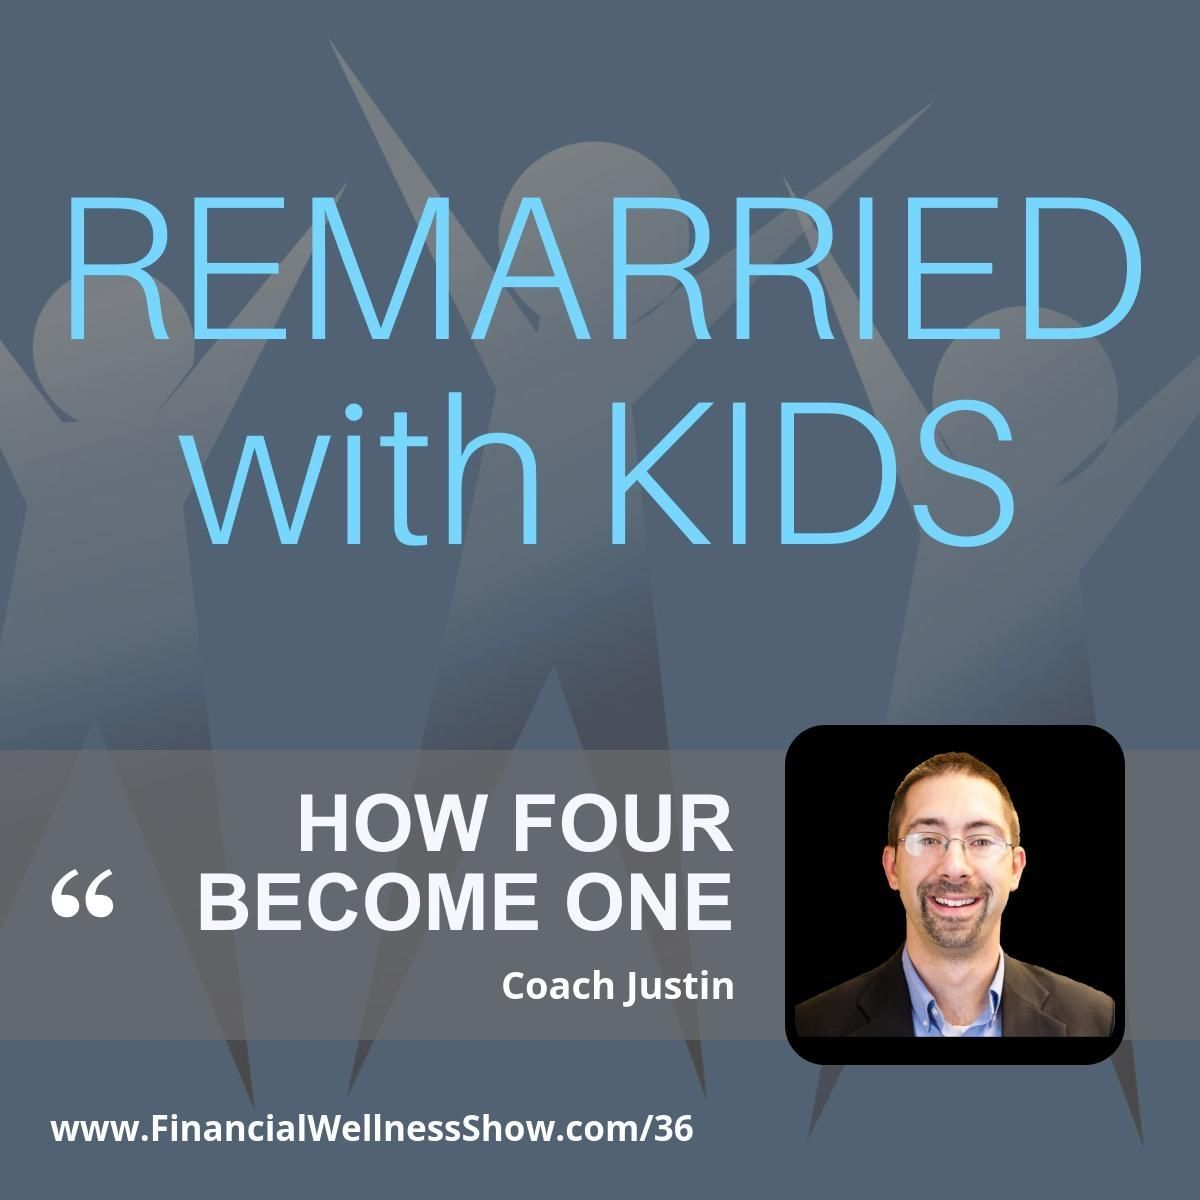 Remarried With Kids: How 4 Become 1